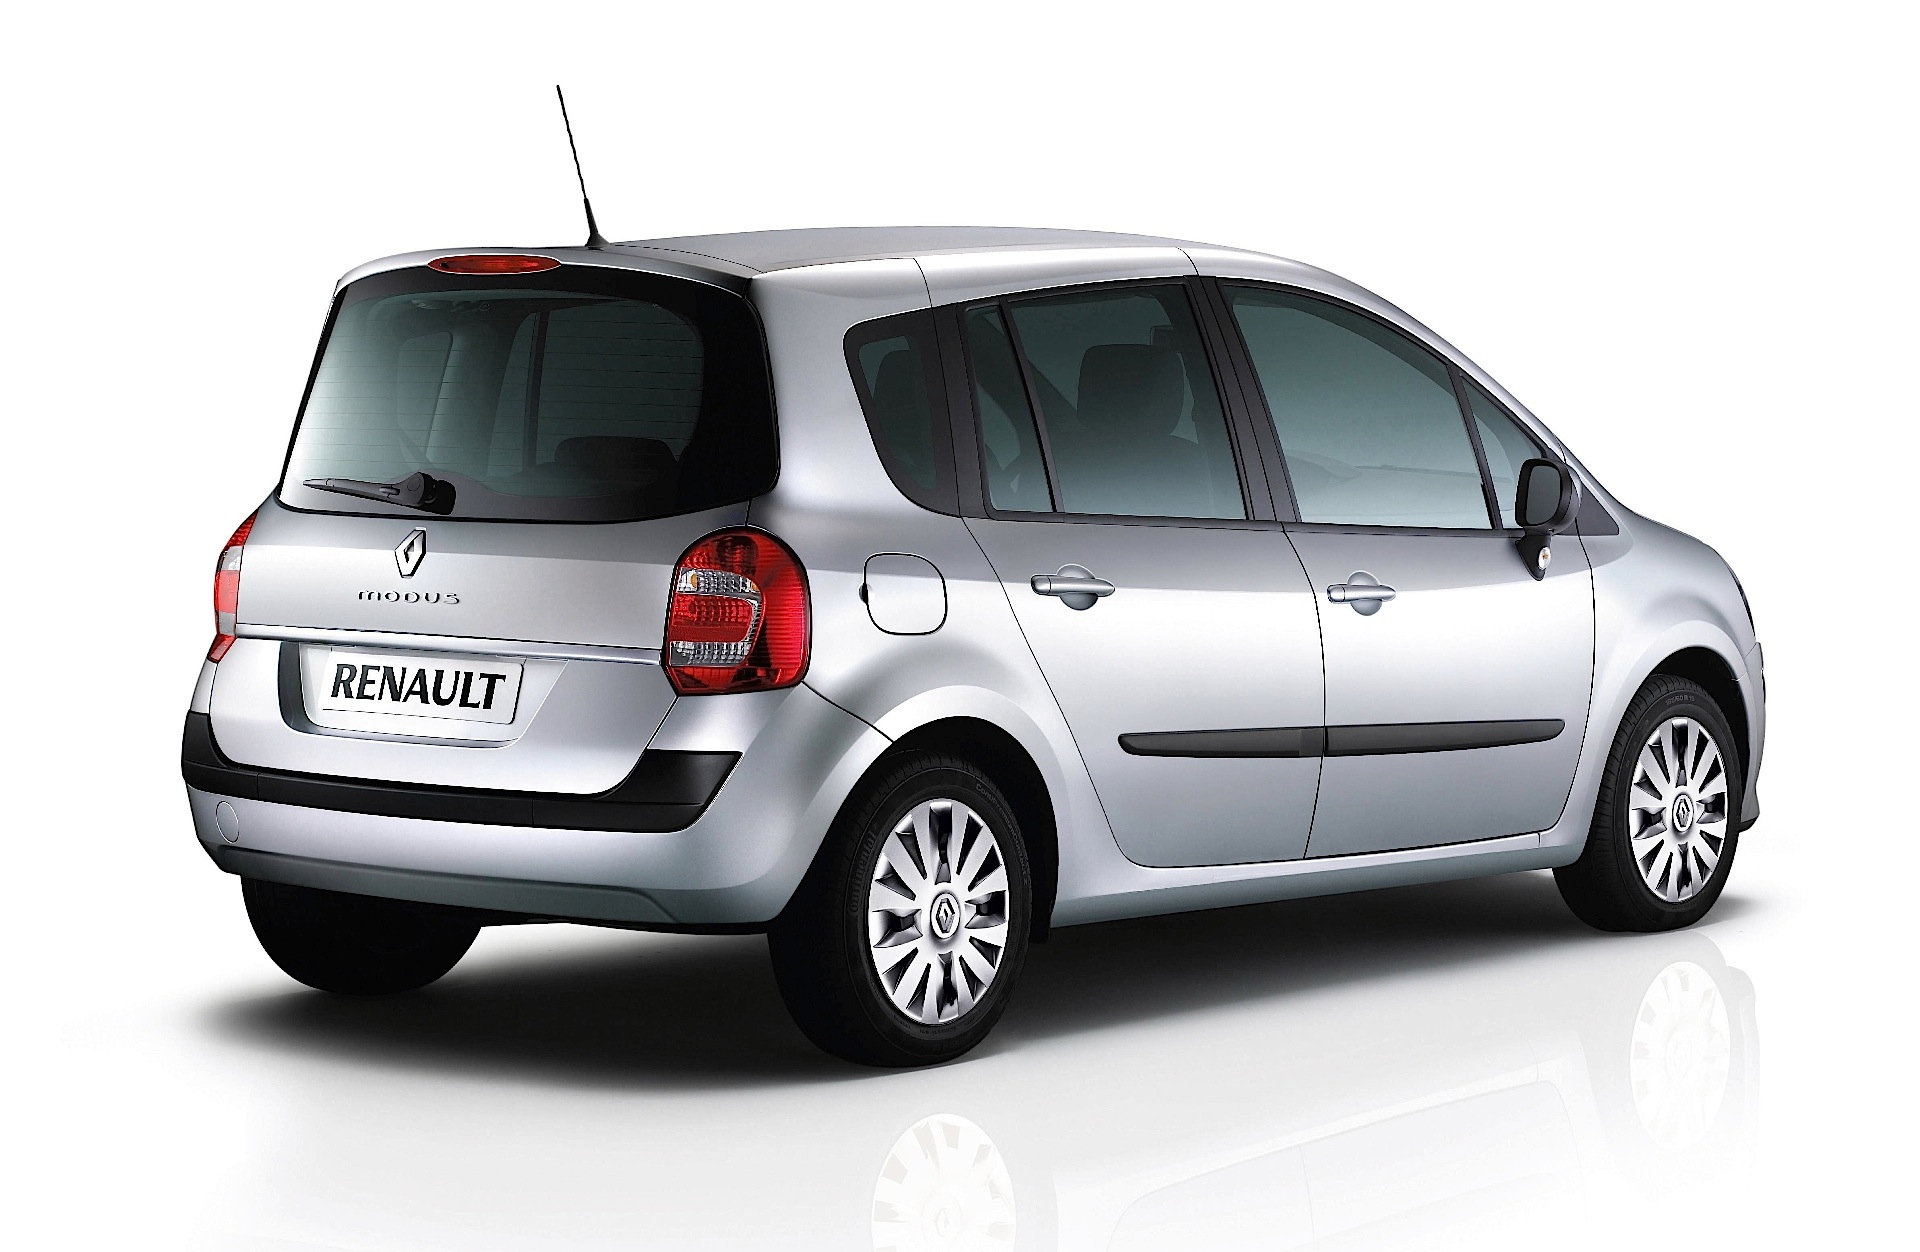 review grand new veloz 1.5 tune up avanza renault modus 2008 2009 2010 2011 2012